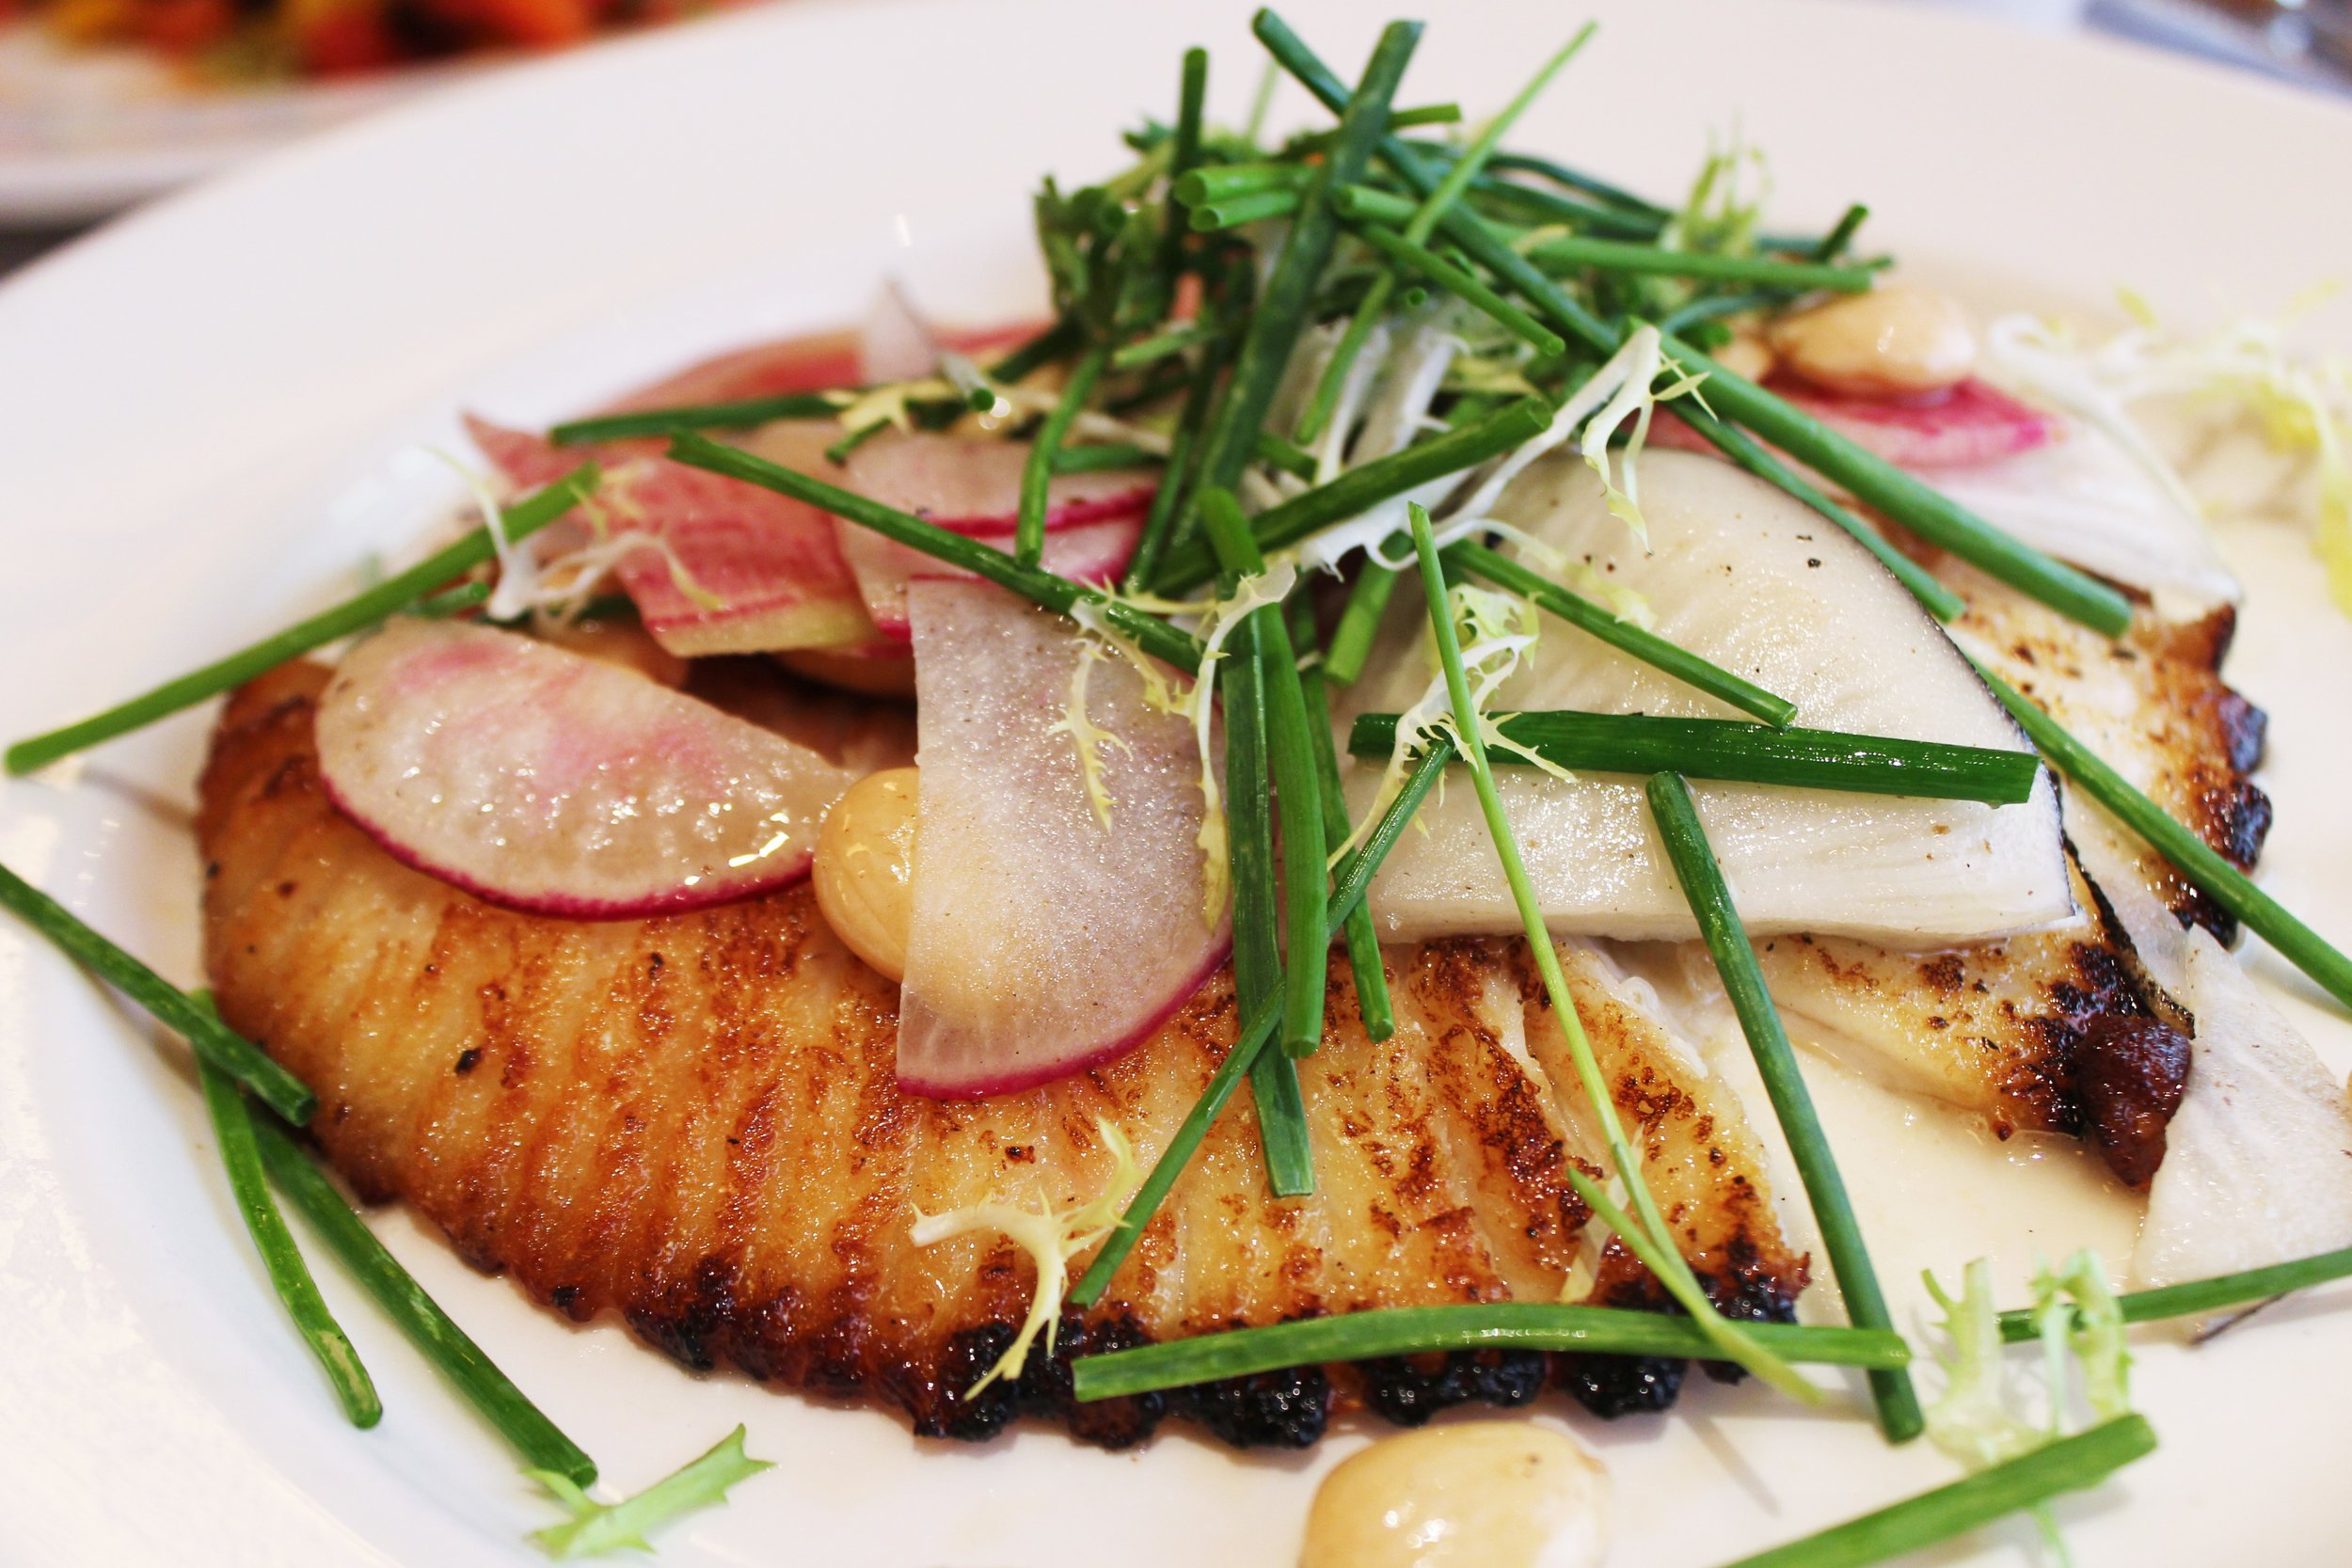 Sautéed Skate with summer beans, radish, marcona almonds and spring onion soubise